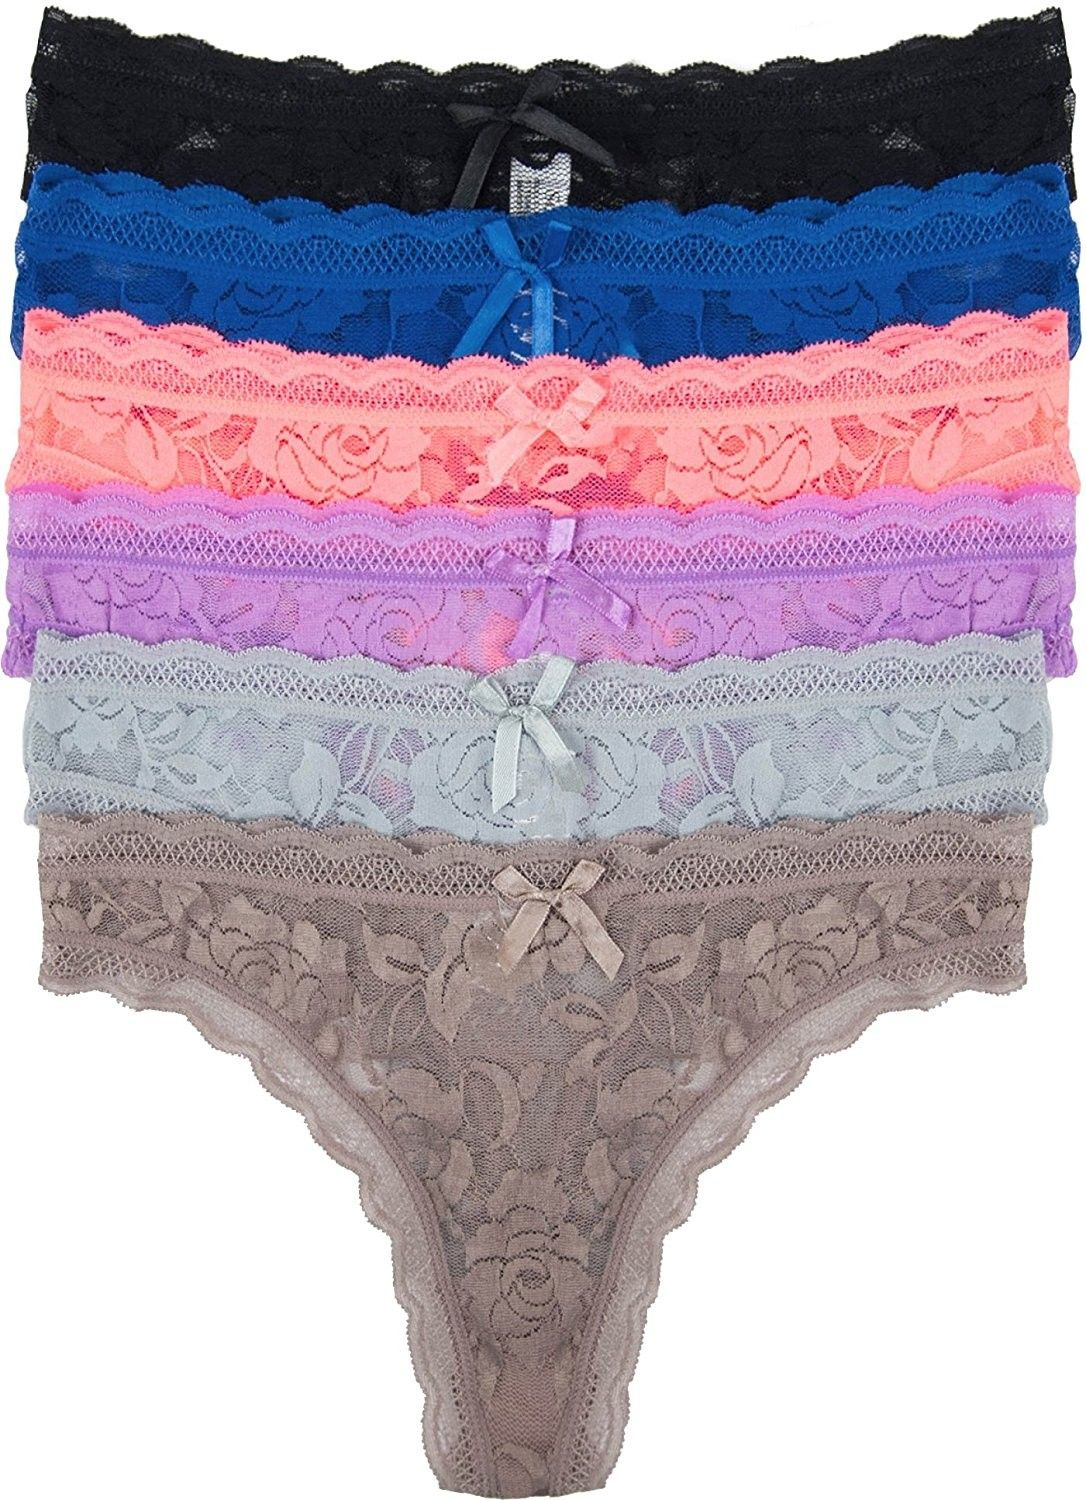 Curve Muse 6 Pack Womens Low Rise Lace G-Strings Thong Panties